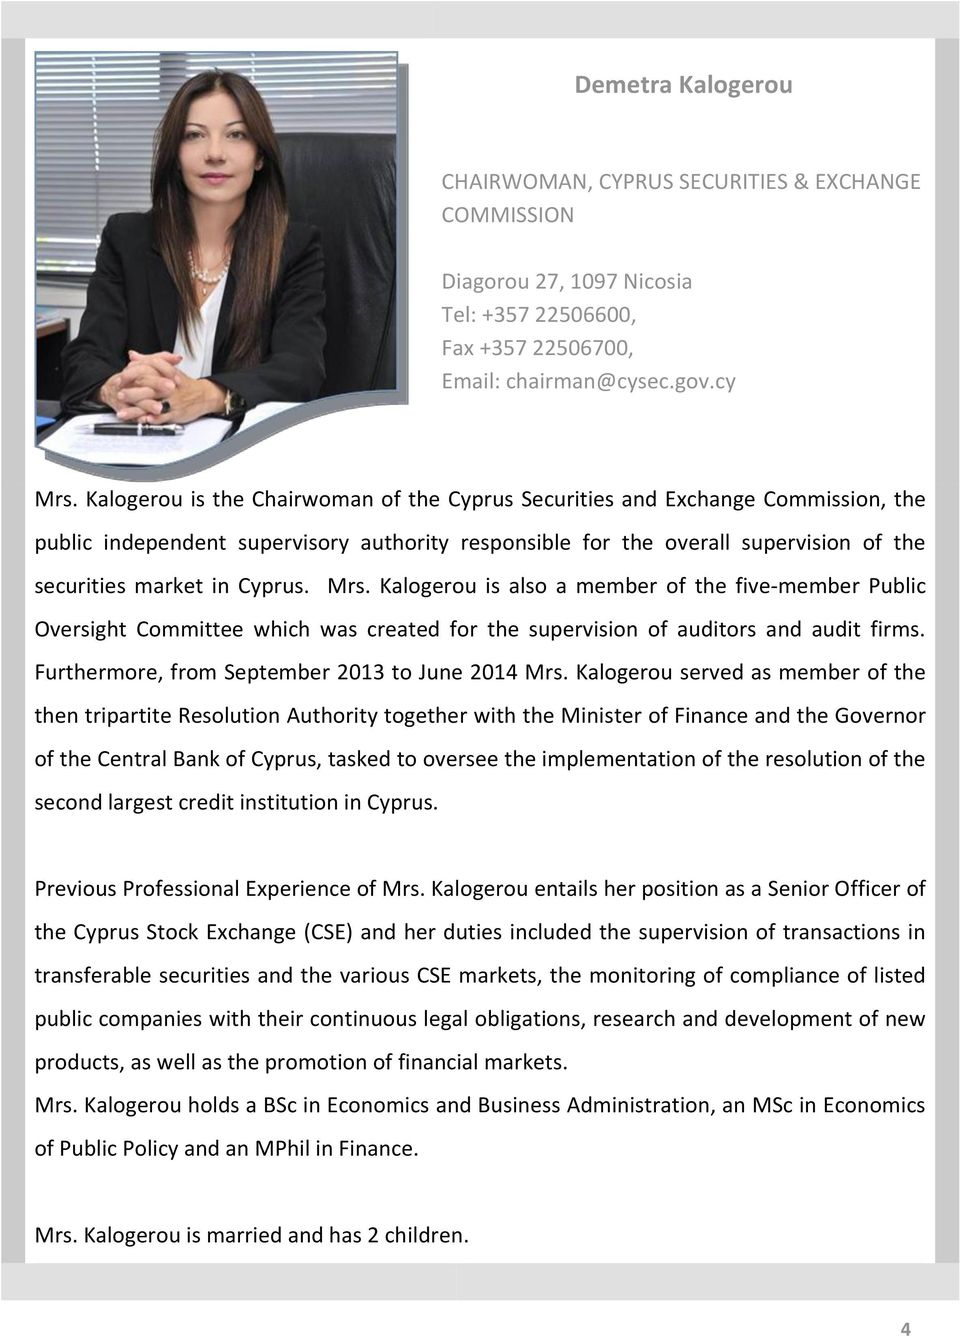 Mrs. Kalogerou is also a member of the five-member Public Oversight Committee which was created for the supervision of auditors and audit firms. Furthermore, from September 2013 to June 2014 Mrs.